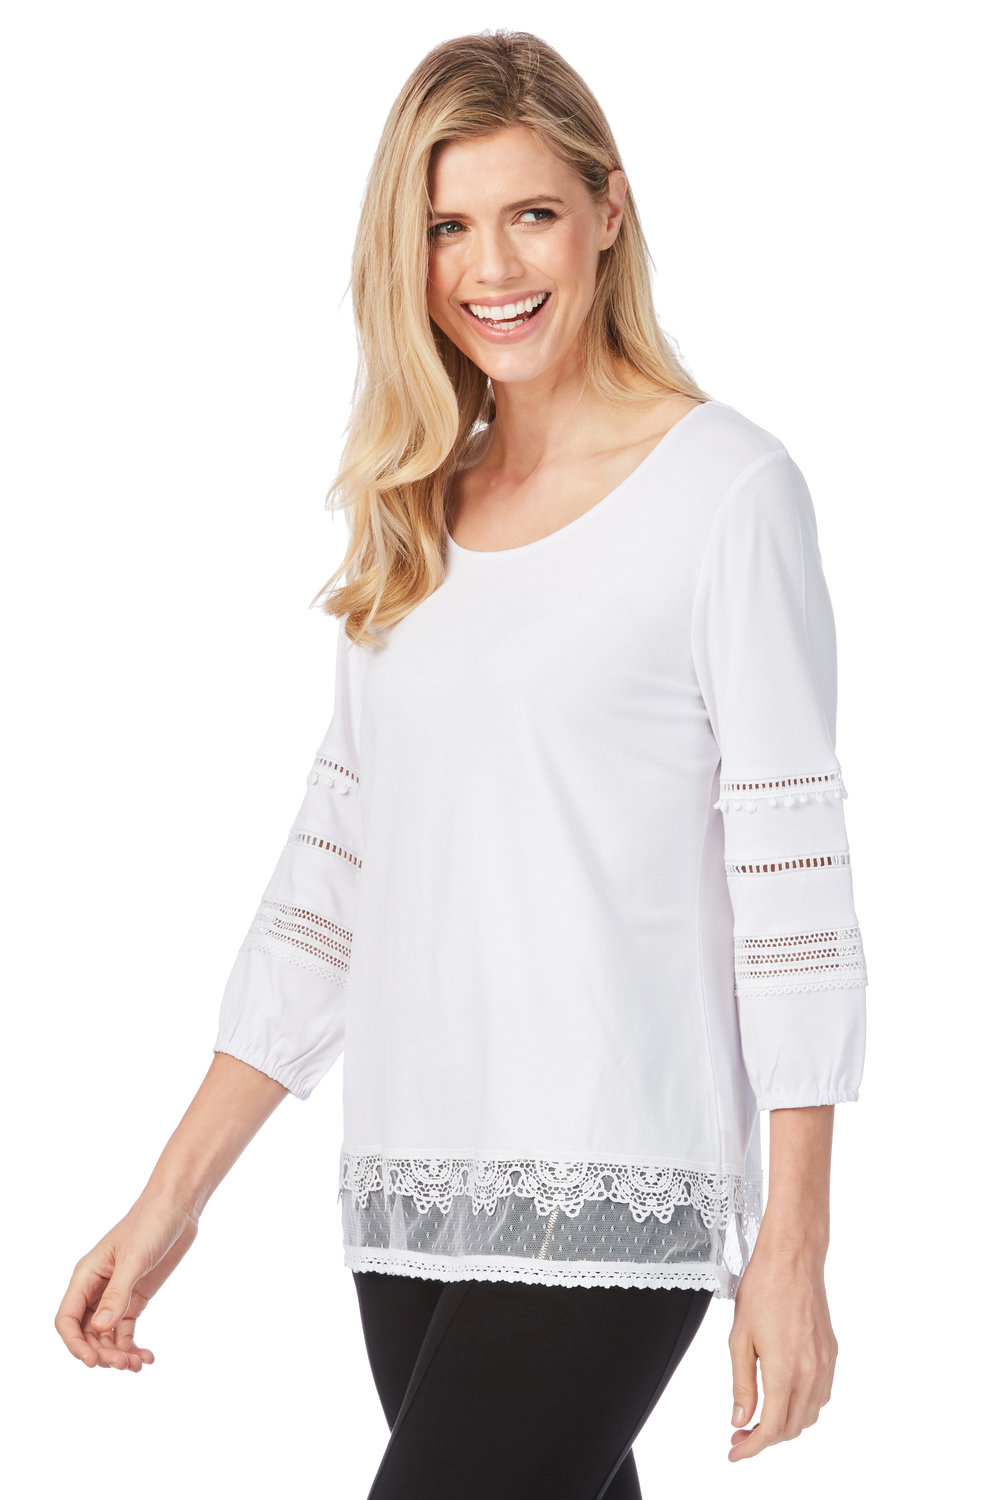 Tops – Find a range of fashionable women's tops that complement any outfit. Match shirts with smart pants for work or simple cropped pants. Dress up with singlets and a maxi skirt. Pair a t-shirt with jeans for a relaxed and comfortable look. Add a cardigan or knitwear to .